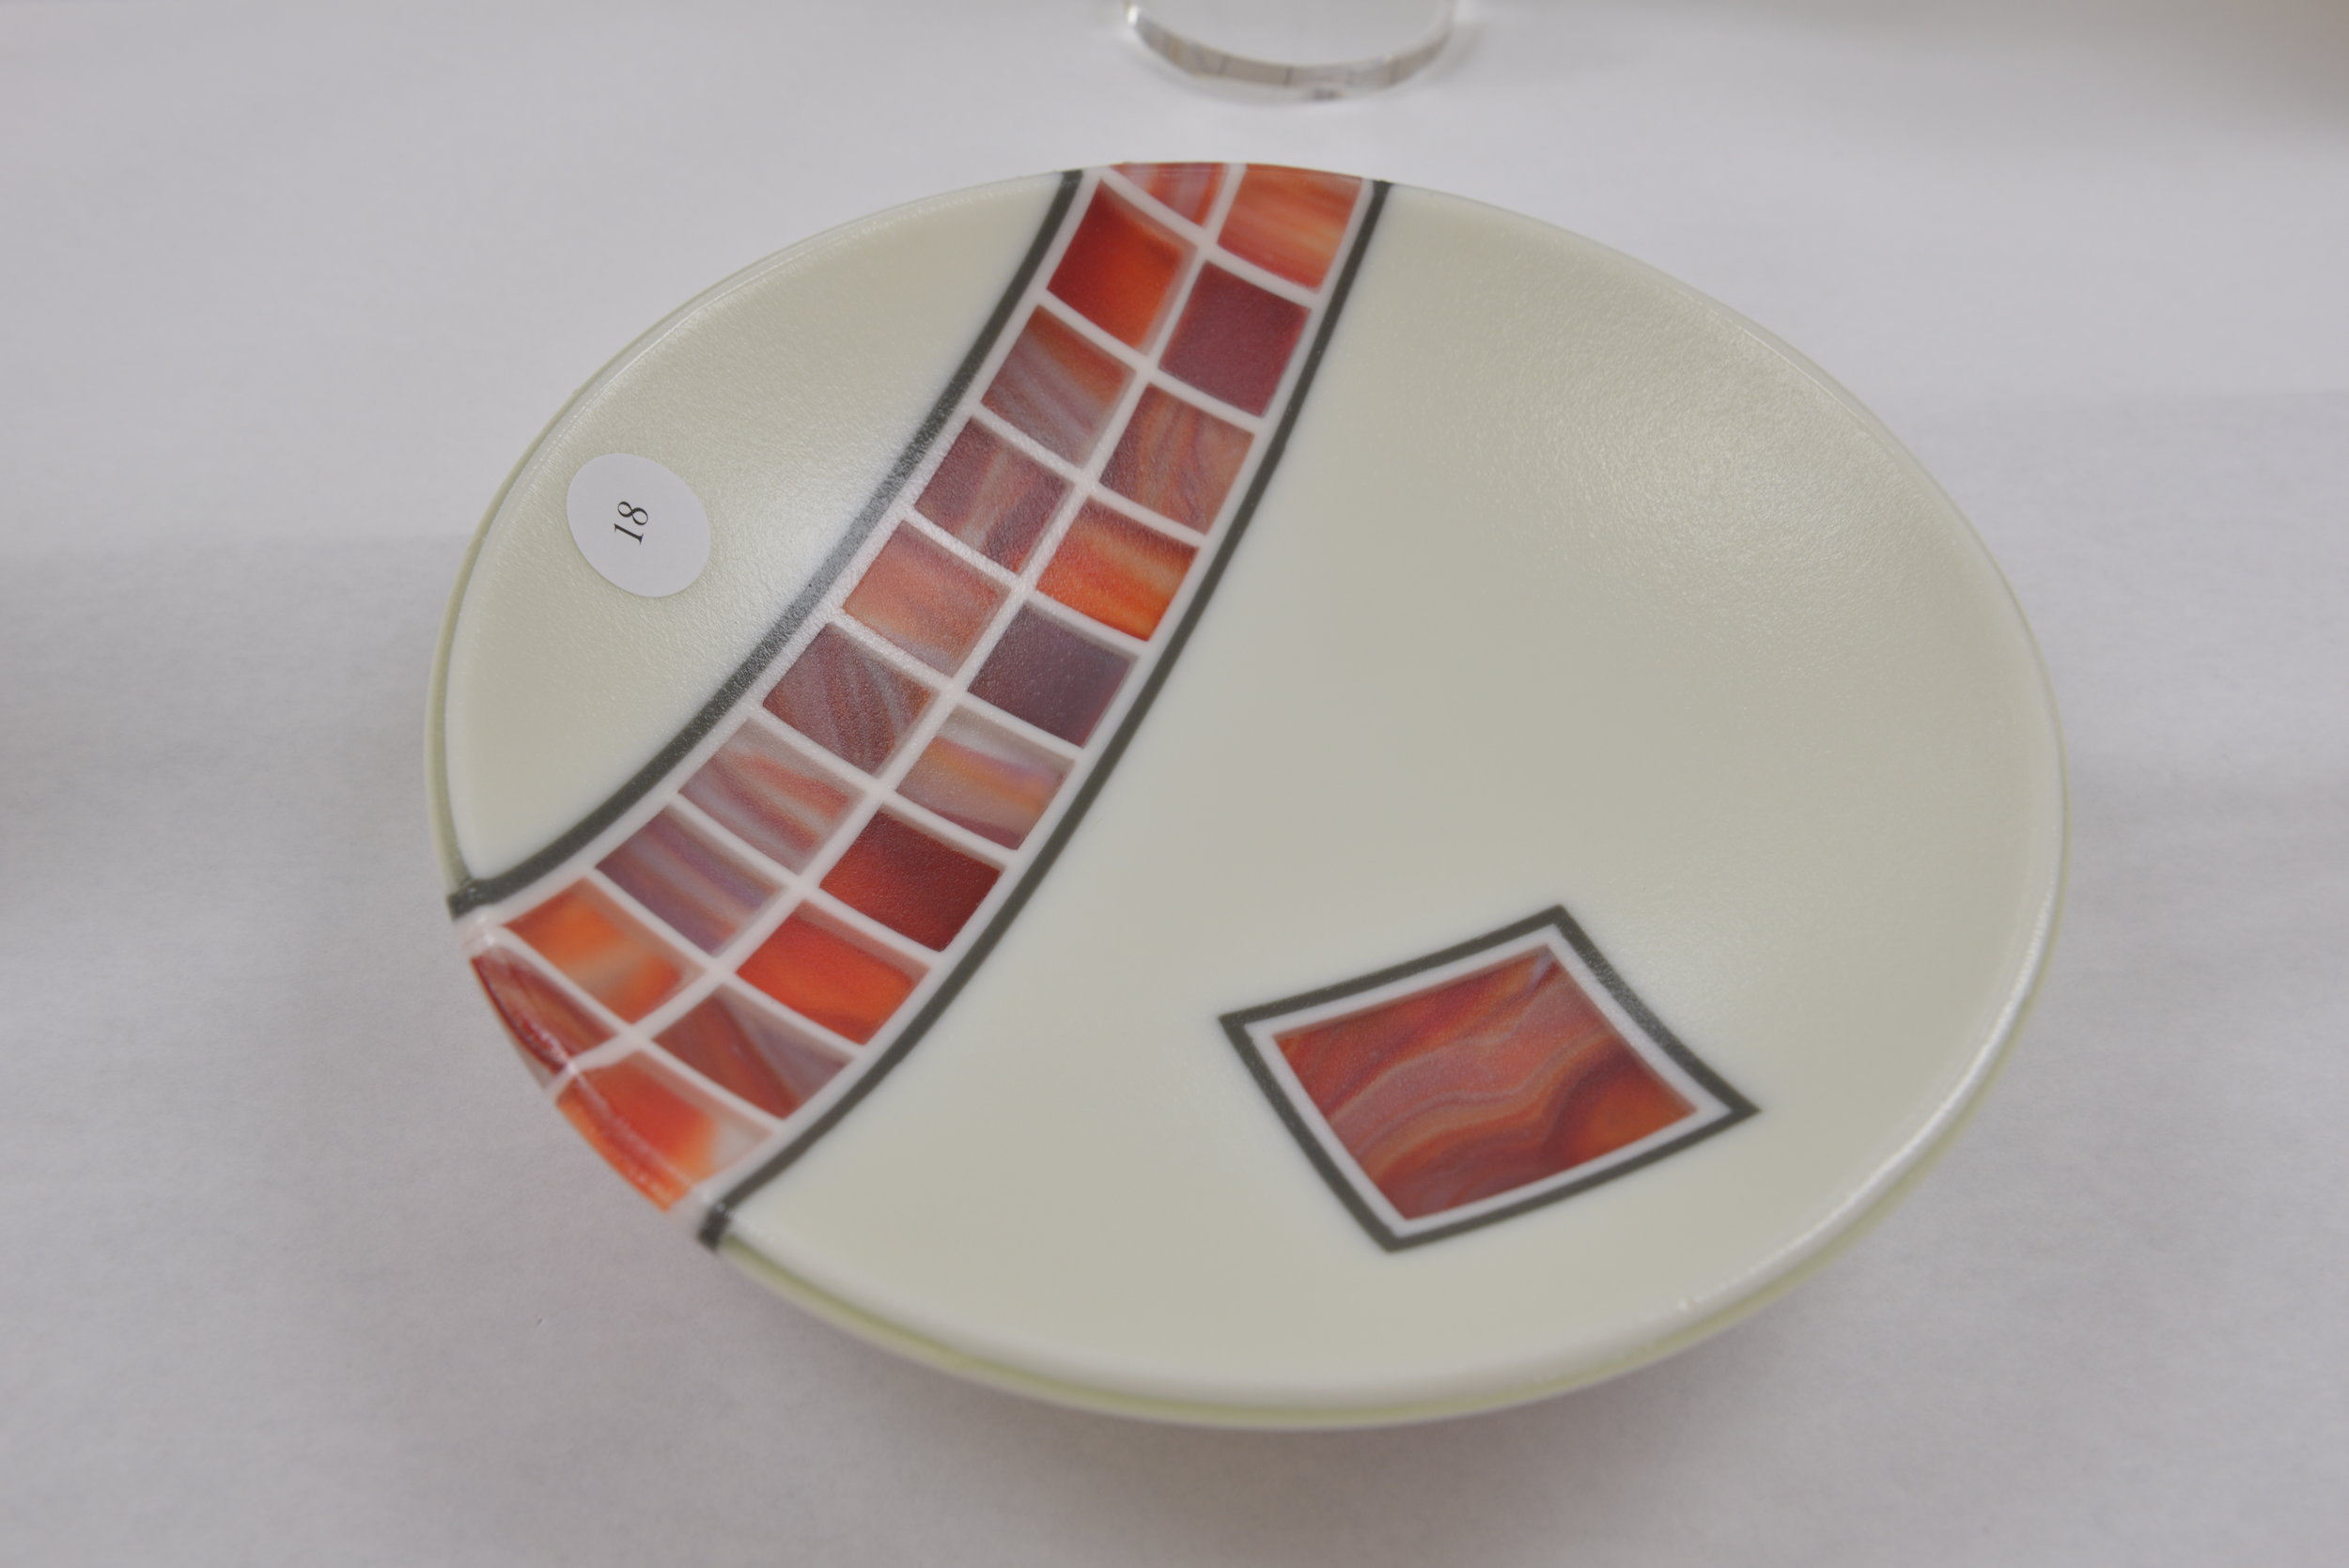 Kiln-Formed Glass Amateur - 1st Place